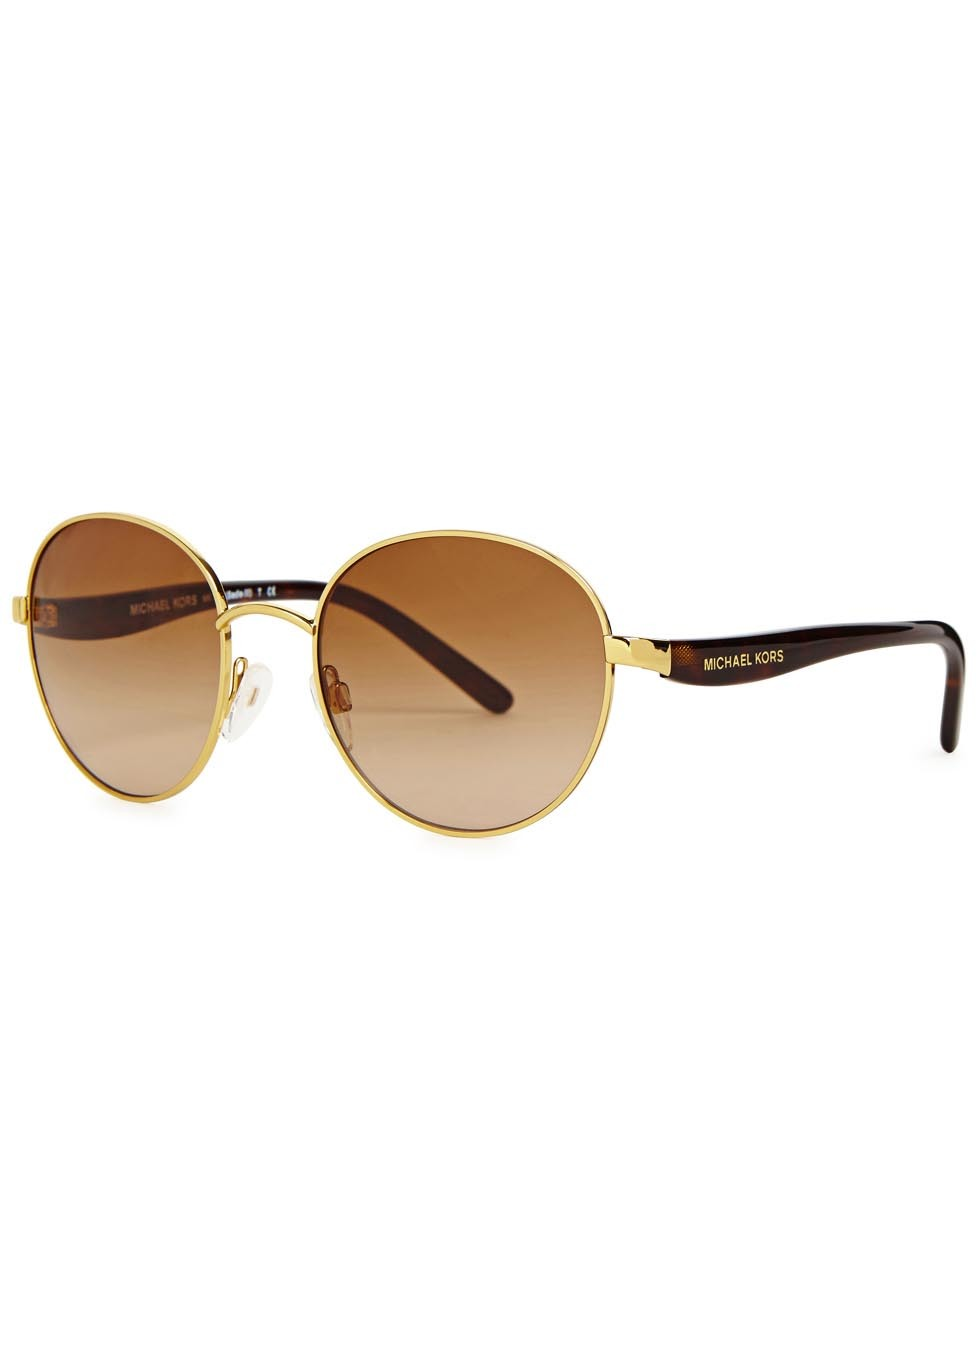 Sadie Iii Gold Tone Round Frame Sunglasses - predominant colour: gold; secondary colour: black; occasions: casual, holiday; style: round; size: standard; material: chain/metal; pattern: tortoiseshell; finish: metallic; season: a/w 2015; wardrobe: basic